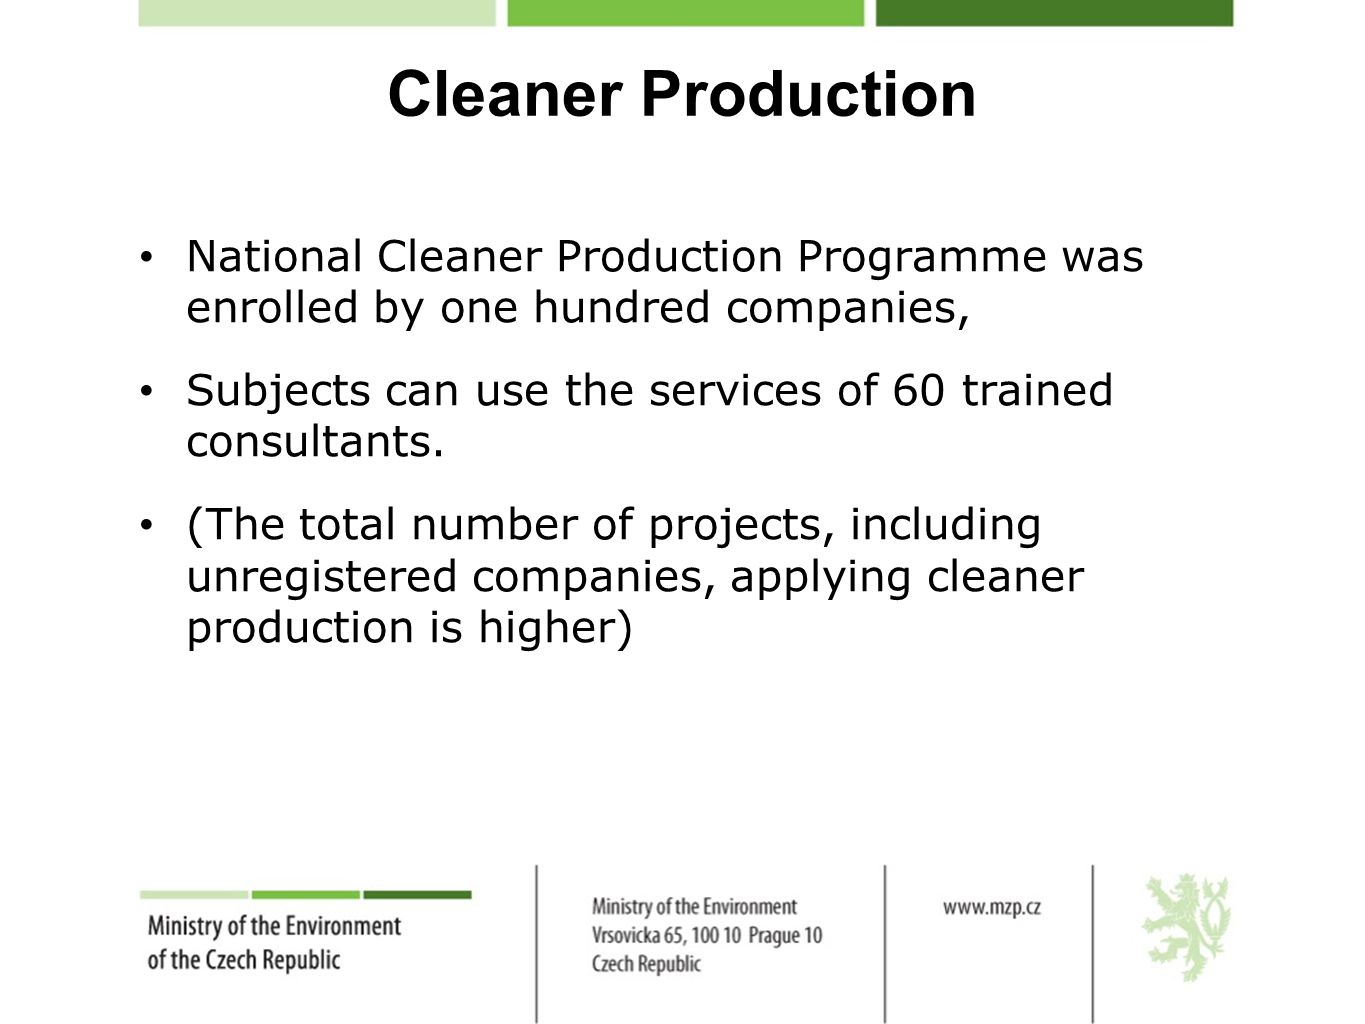 Cleaner Production National Cleaner Production Programme was enrolled by one hundred companies, Subjects can use the services of 60 trained consultant